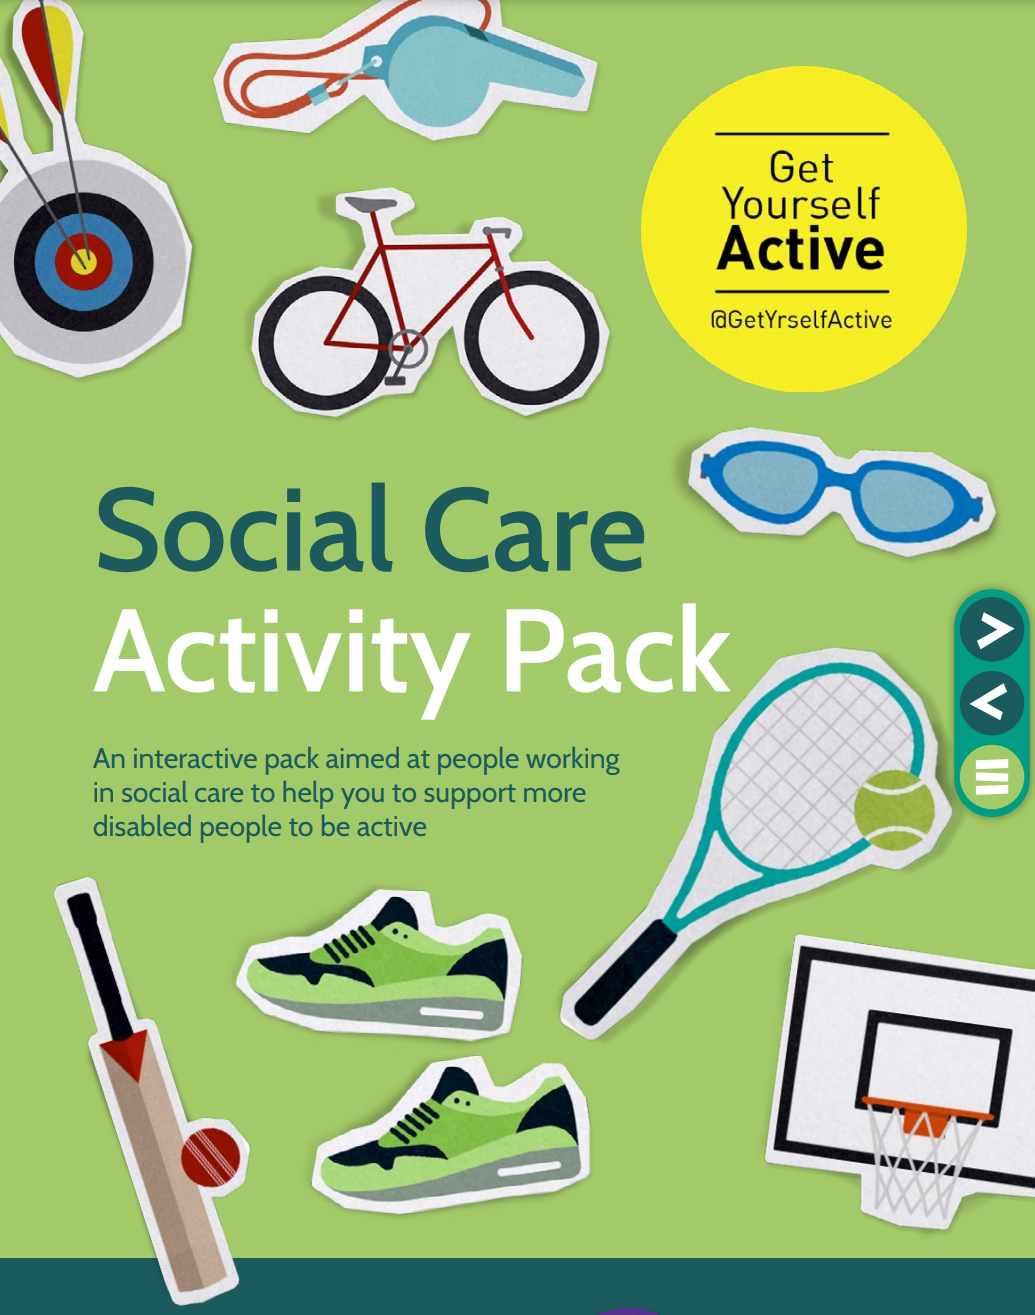 Get Yourself Active launches new Social Care Activity pack